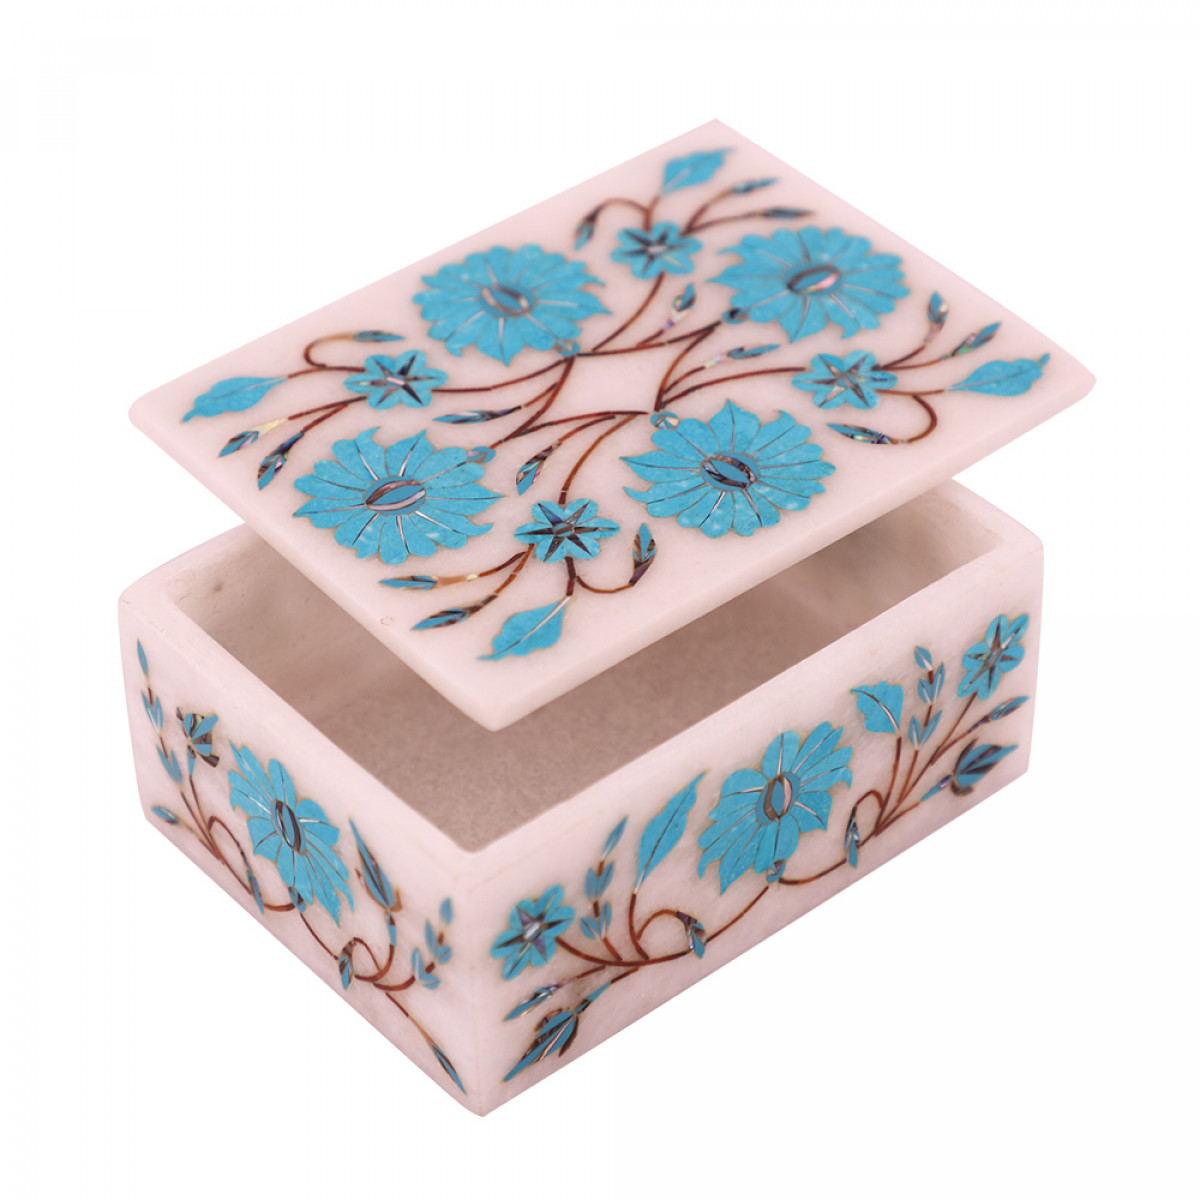 Marble Jewellery Boxes - Unique Artisan Crafted Jewelry Boxes At Artefactindia